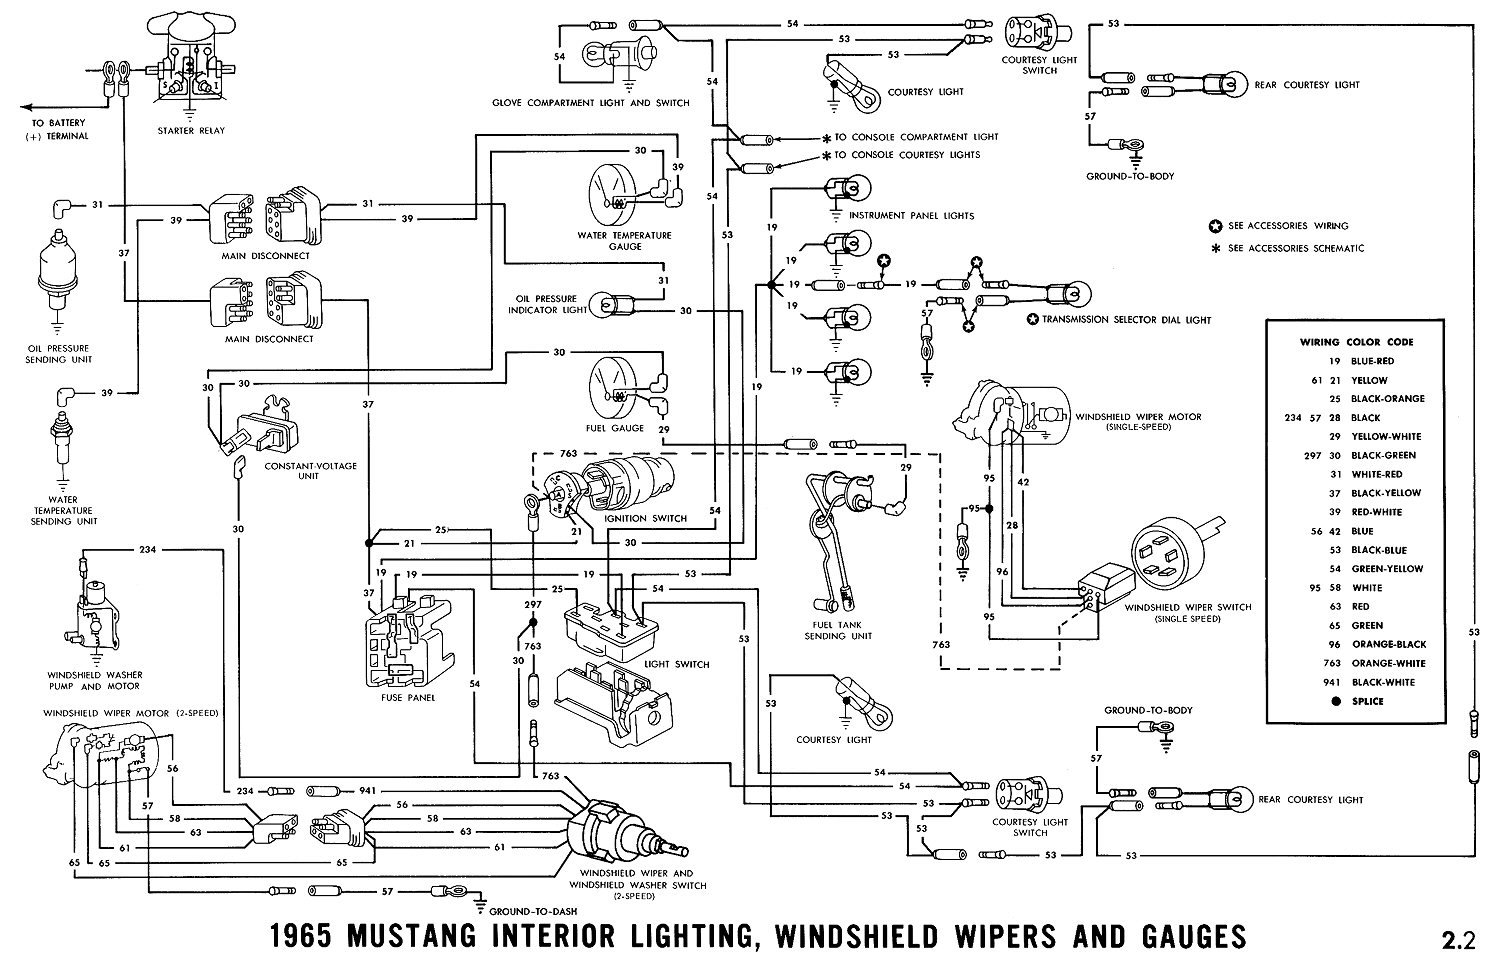 1970 mustang wiring diagram image wiring 1970 ford mach 1 wiring diagram 1970 auto wiring diagram schematic on 1970 mustang wiring